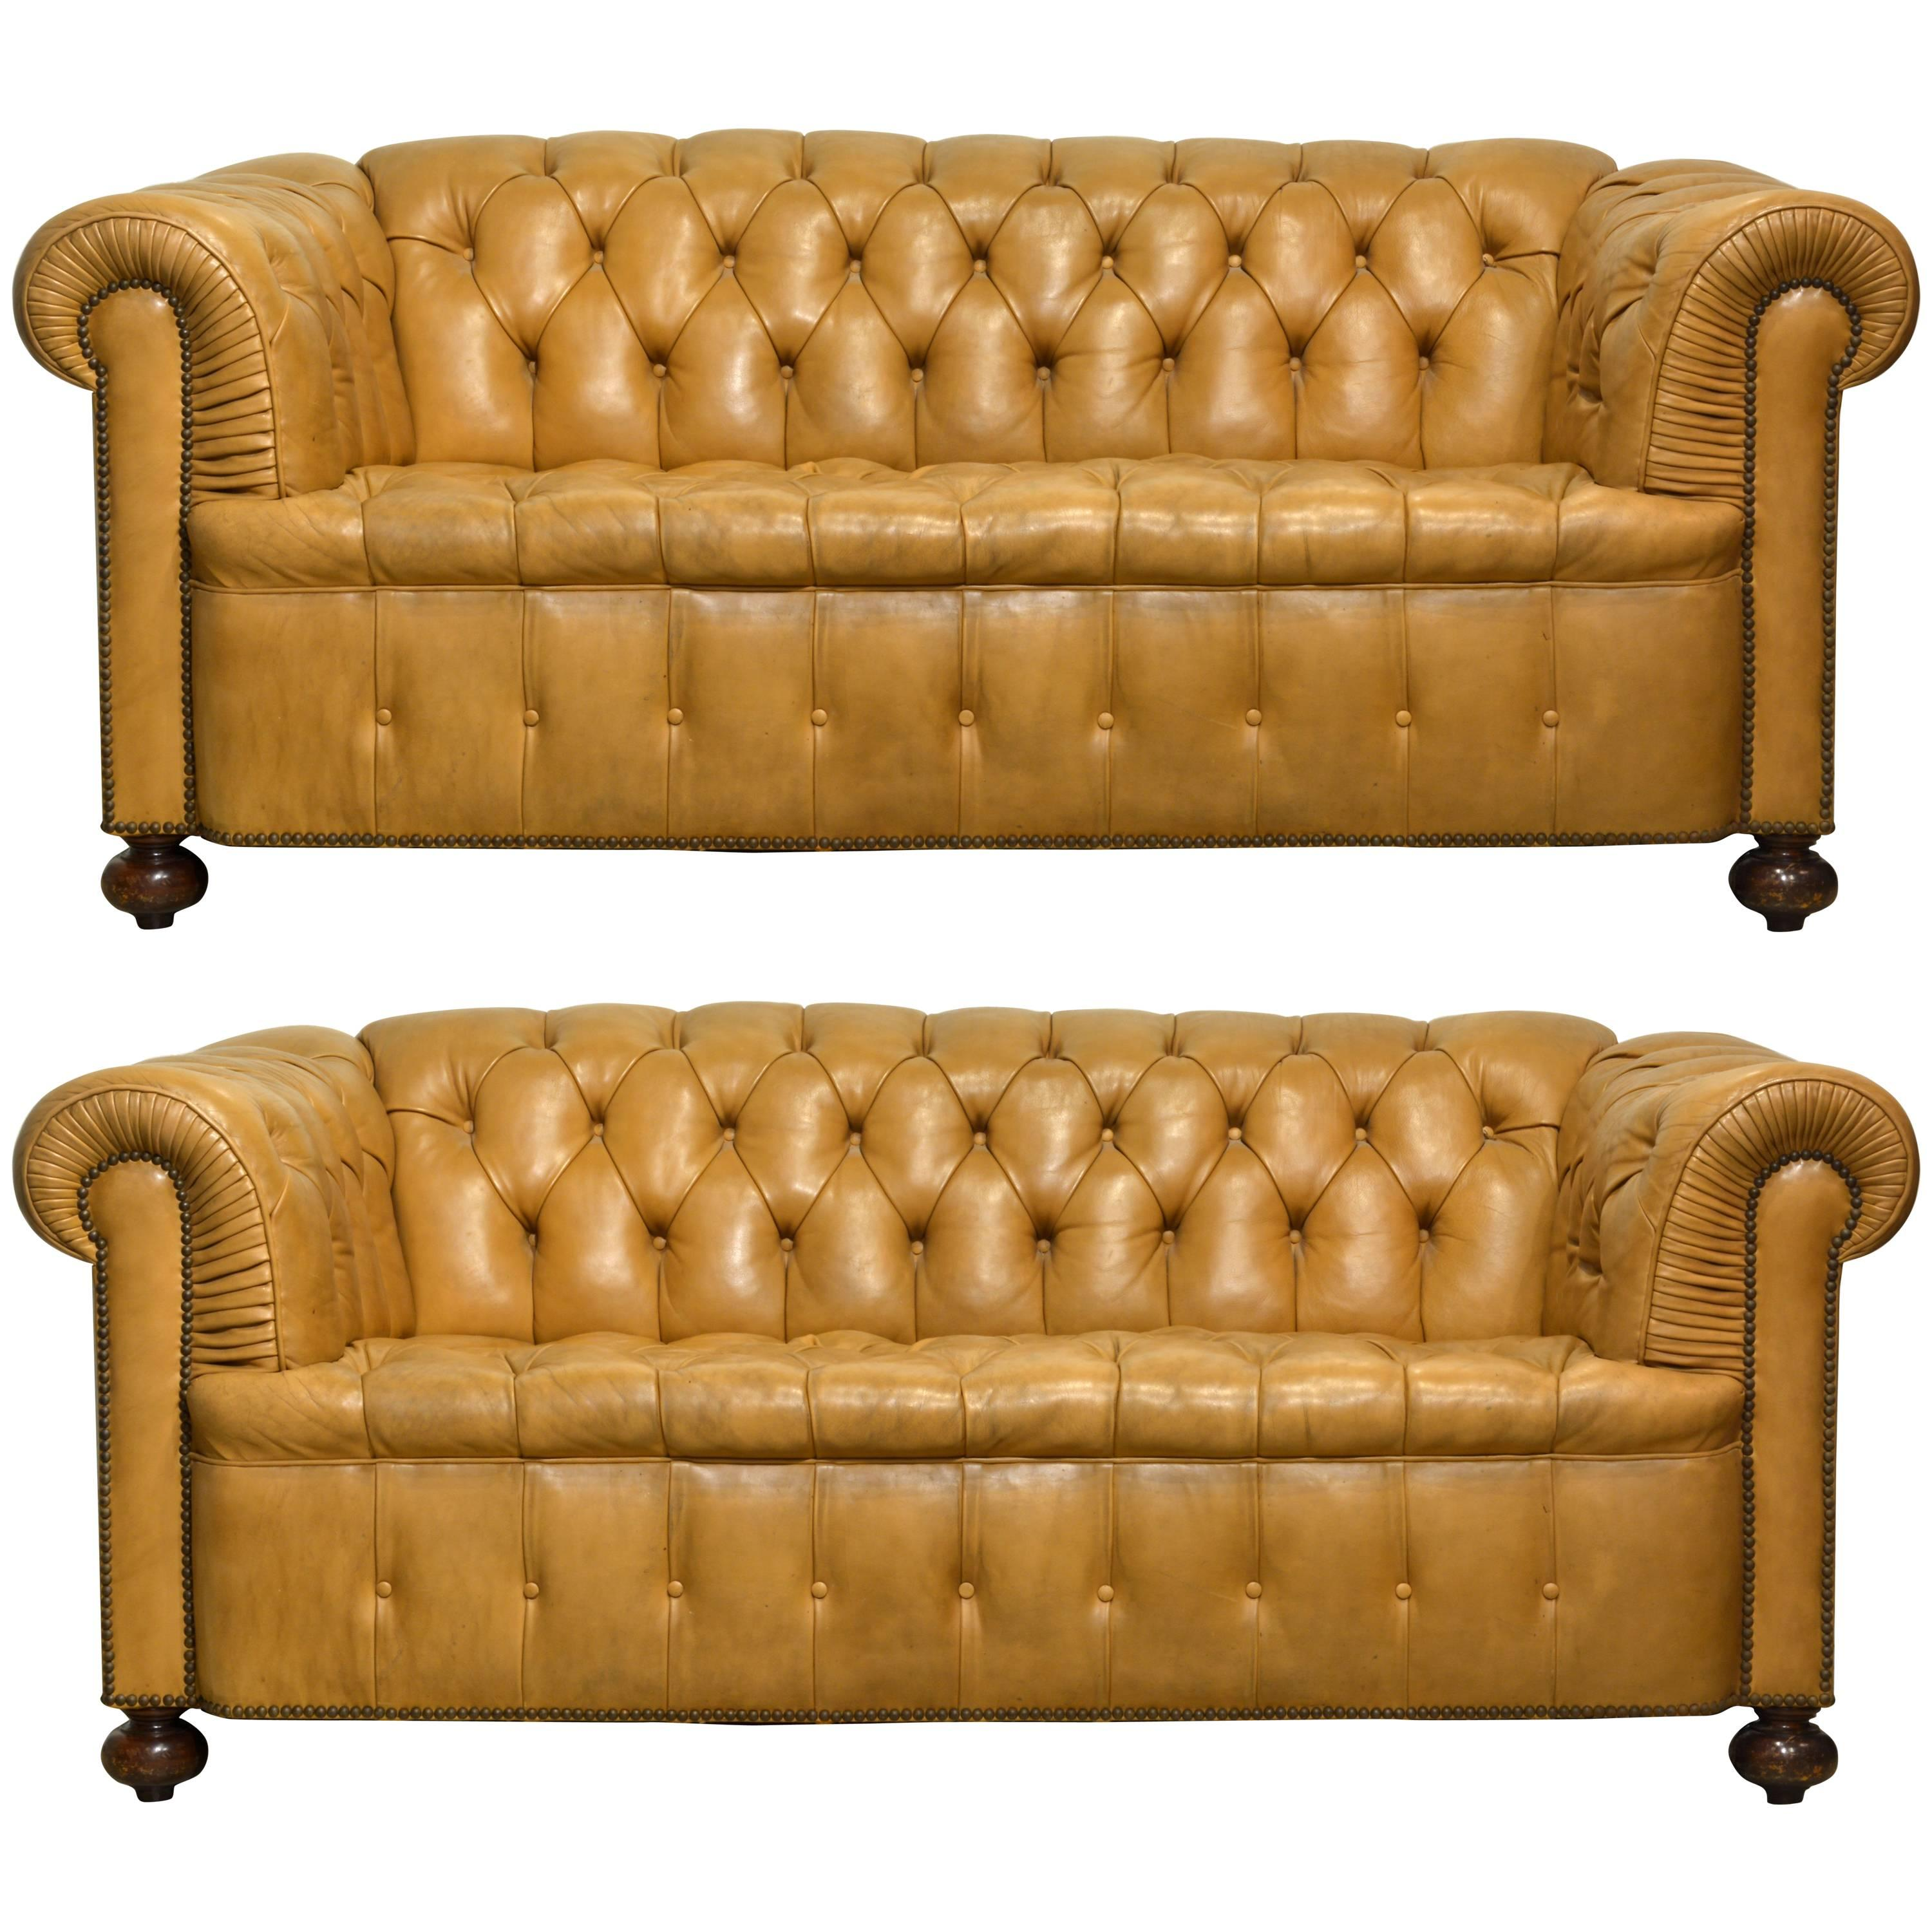 pair of vintage leather sofas with rolled arms and nailhead trim